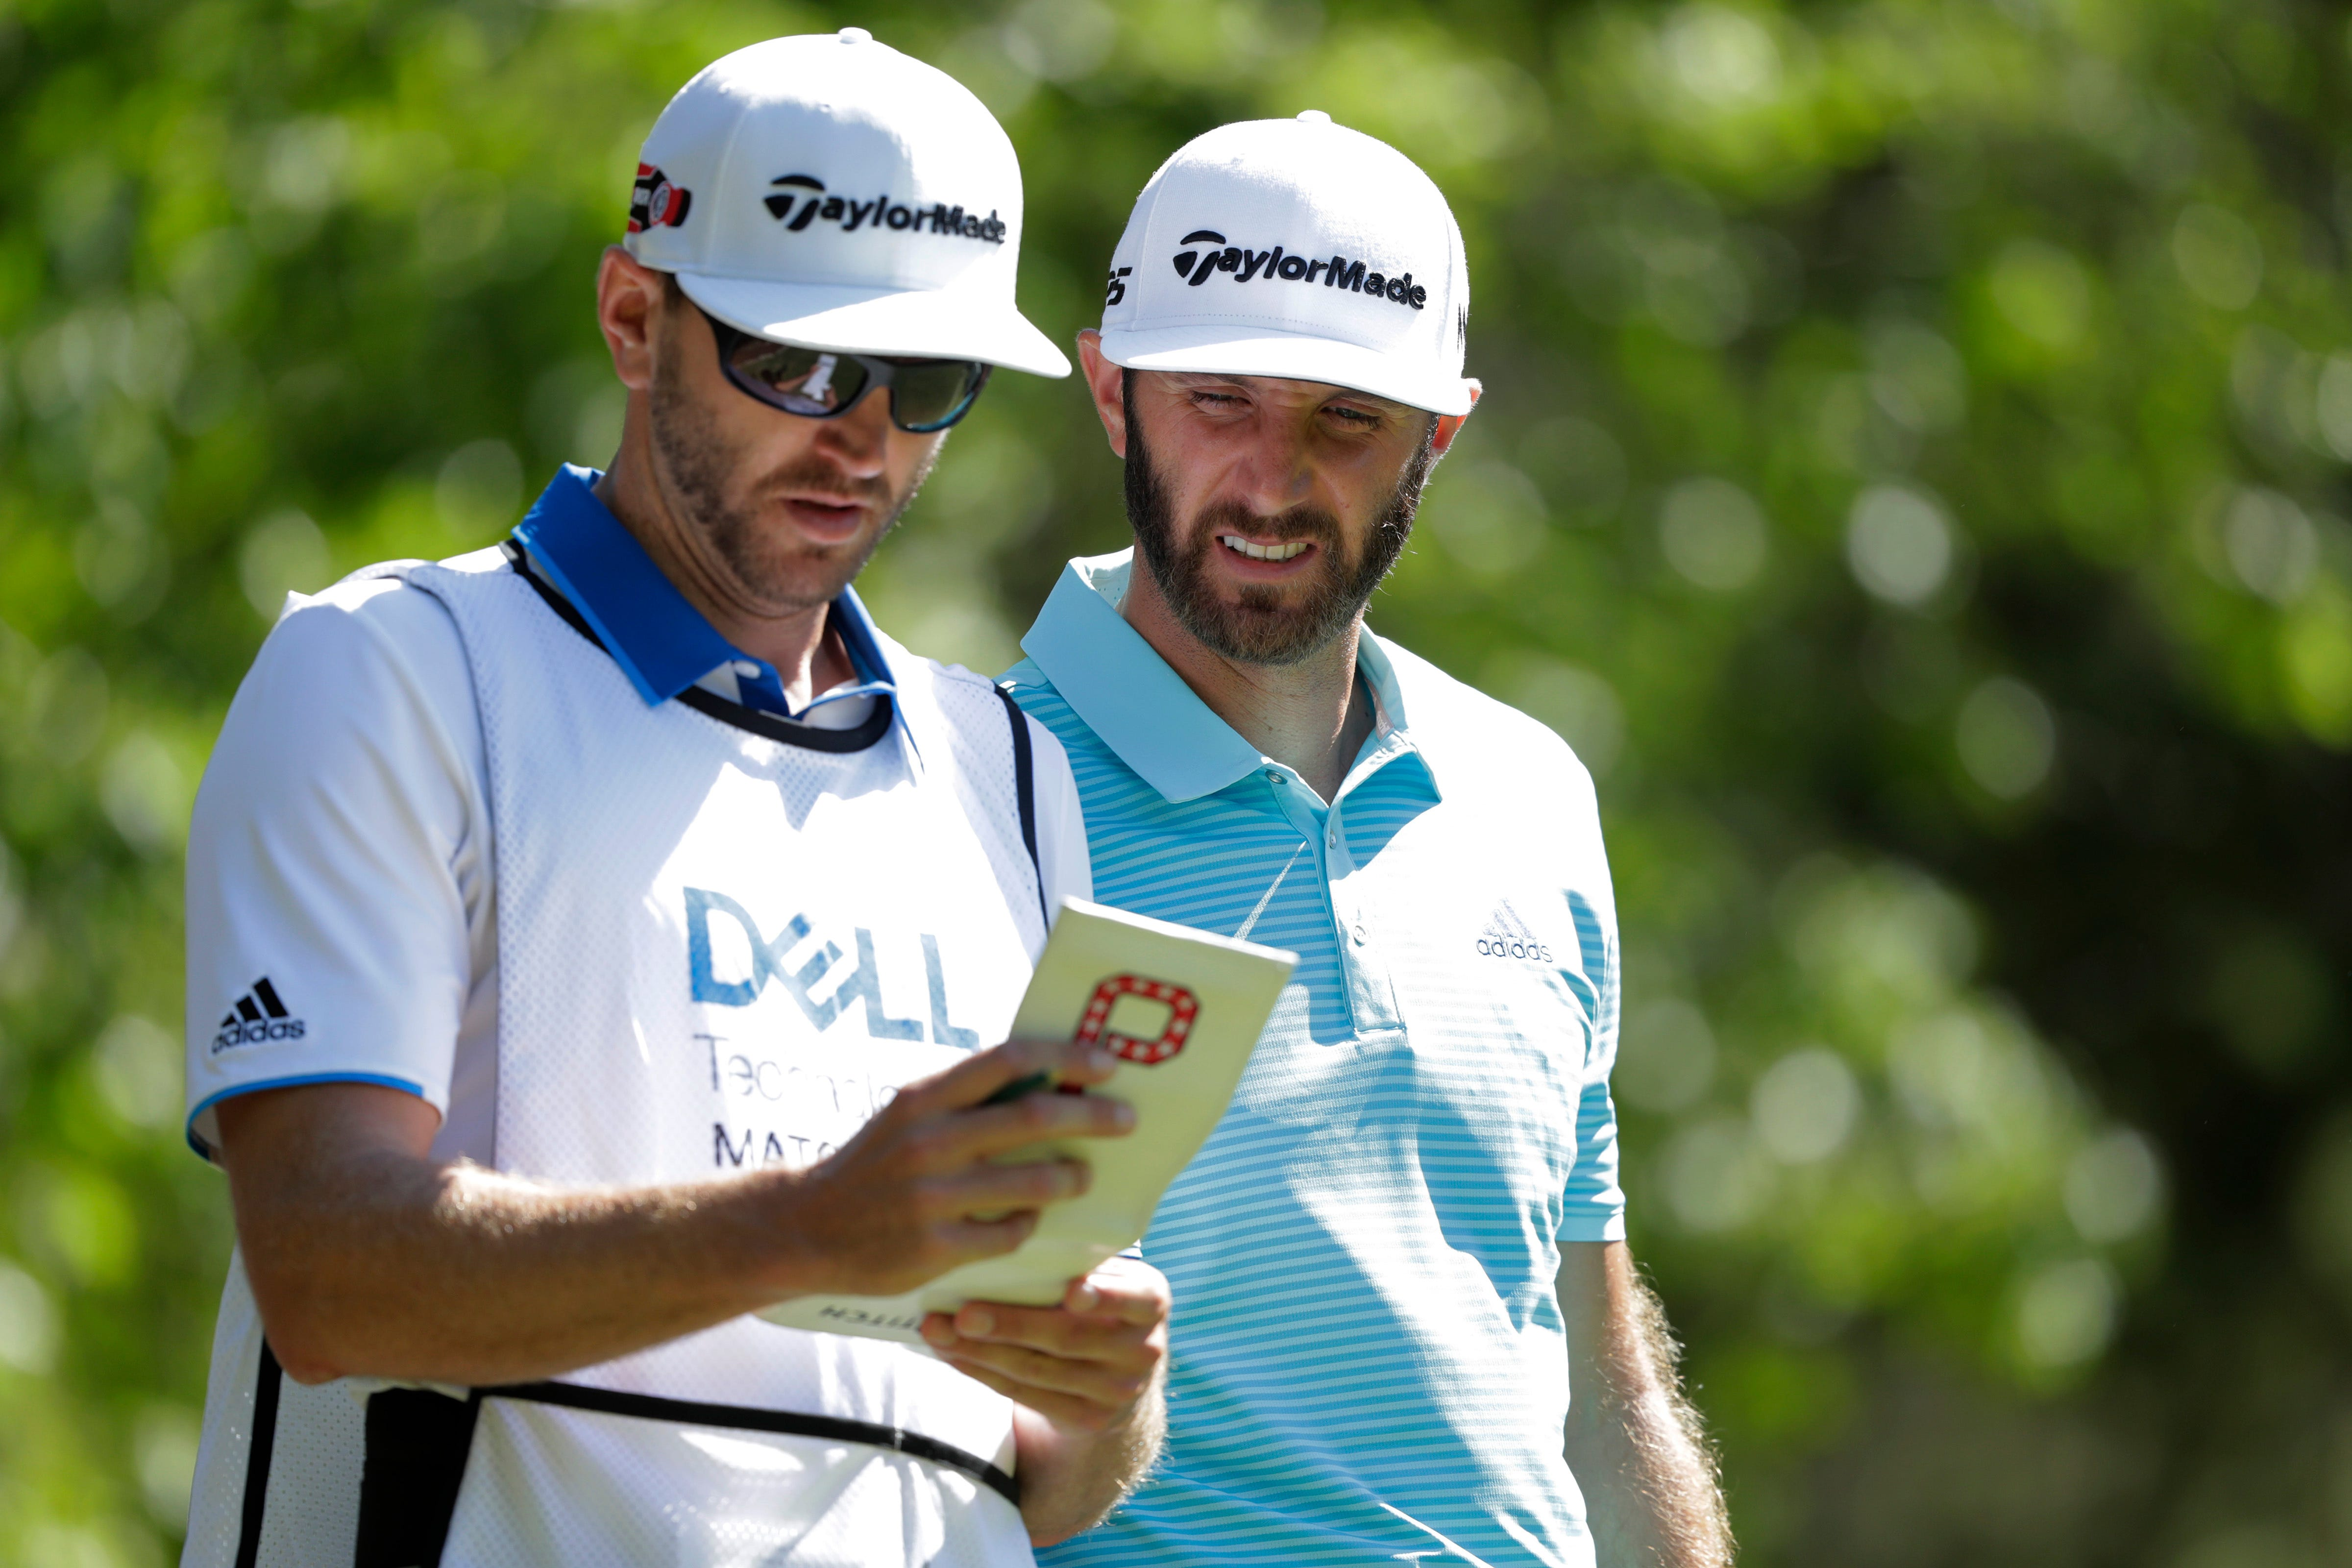 This time, stairs trip up Dustin Johnson's brother and caddie, Austin